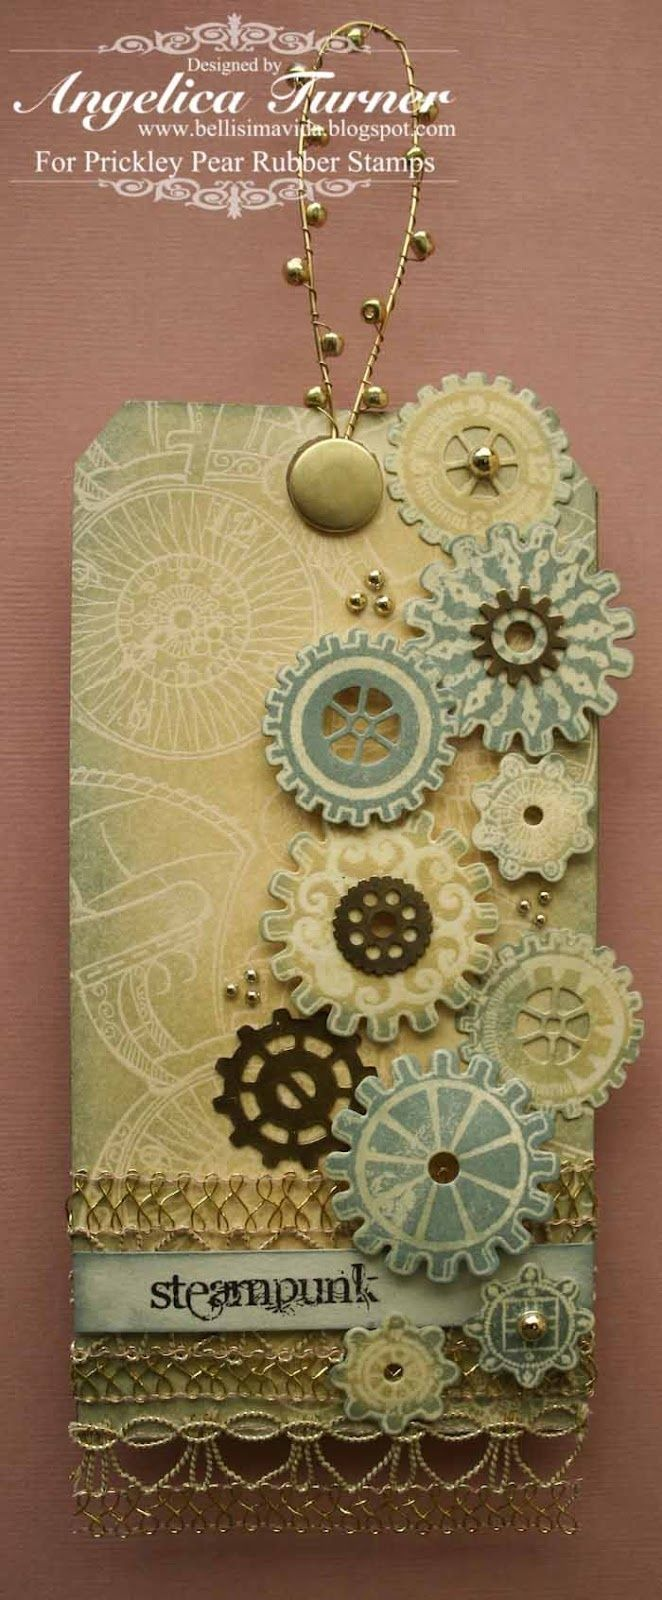 Light blue cream, gold and brown steampunk tag. Gives it more of a wedding look. Clock work cogs. Gold lace and brads. Chain on top.